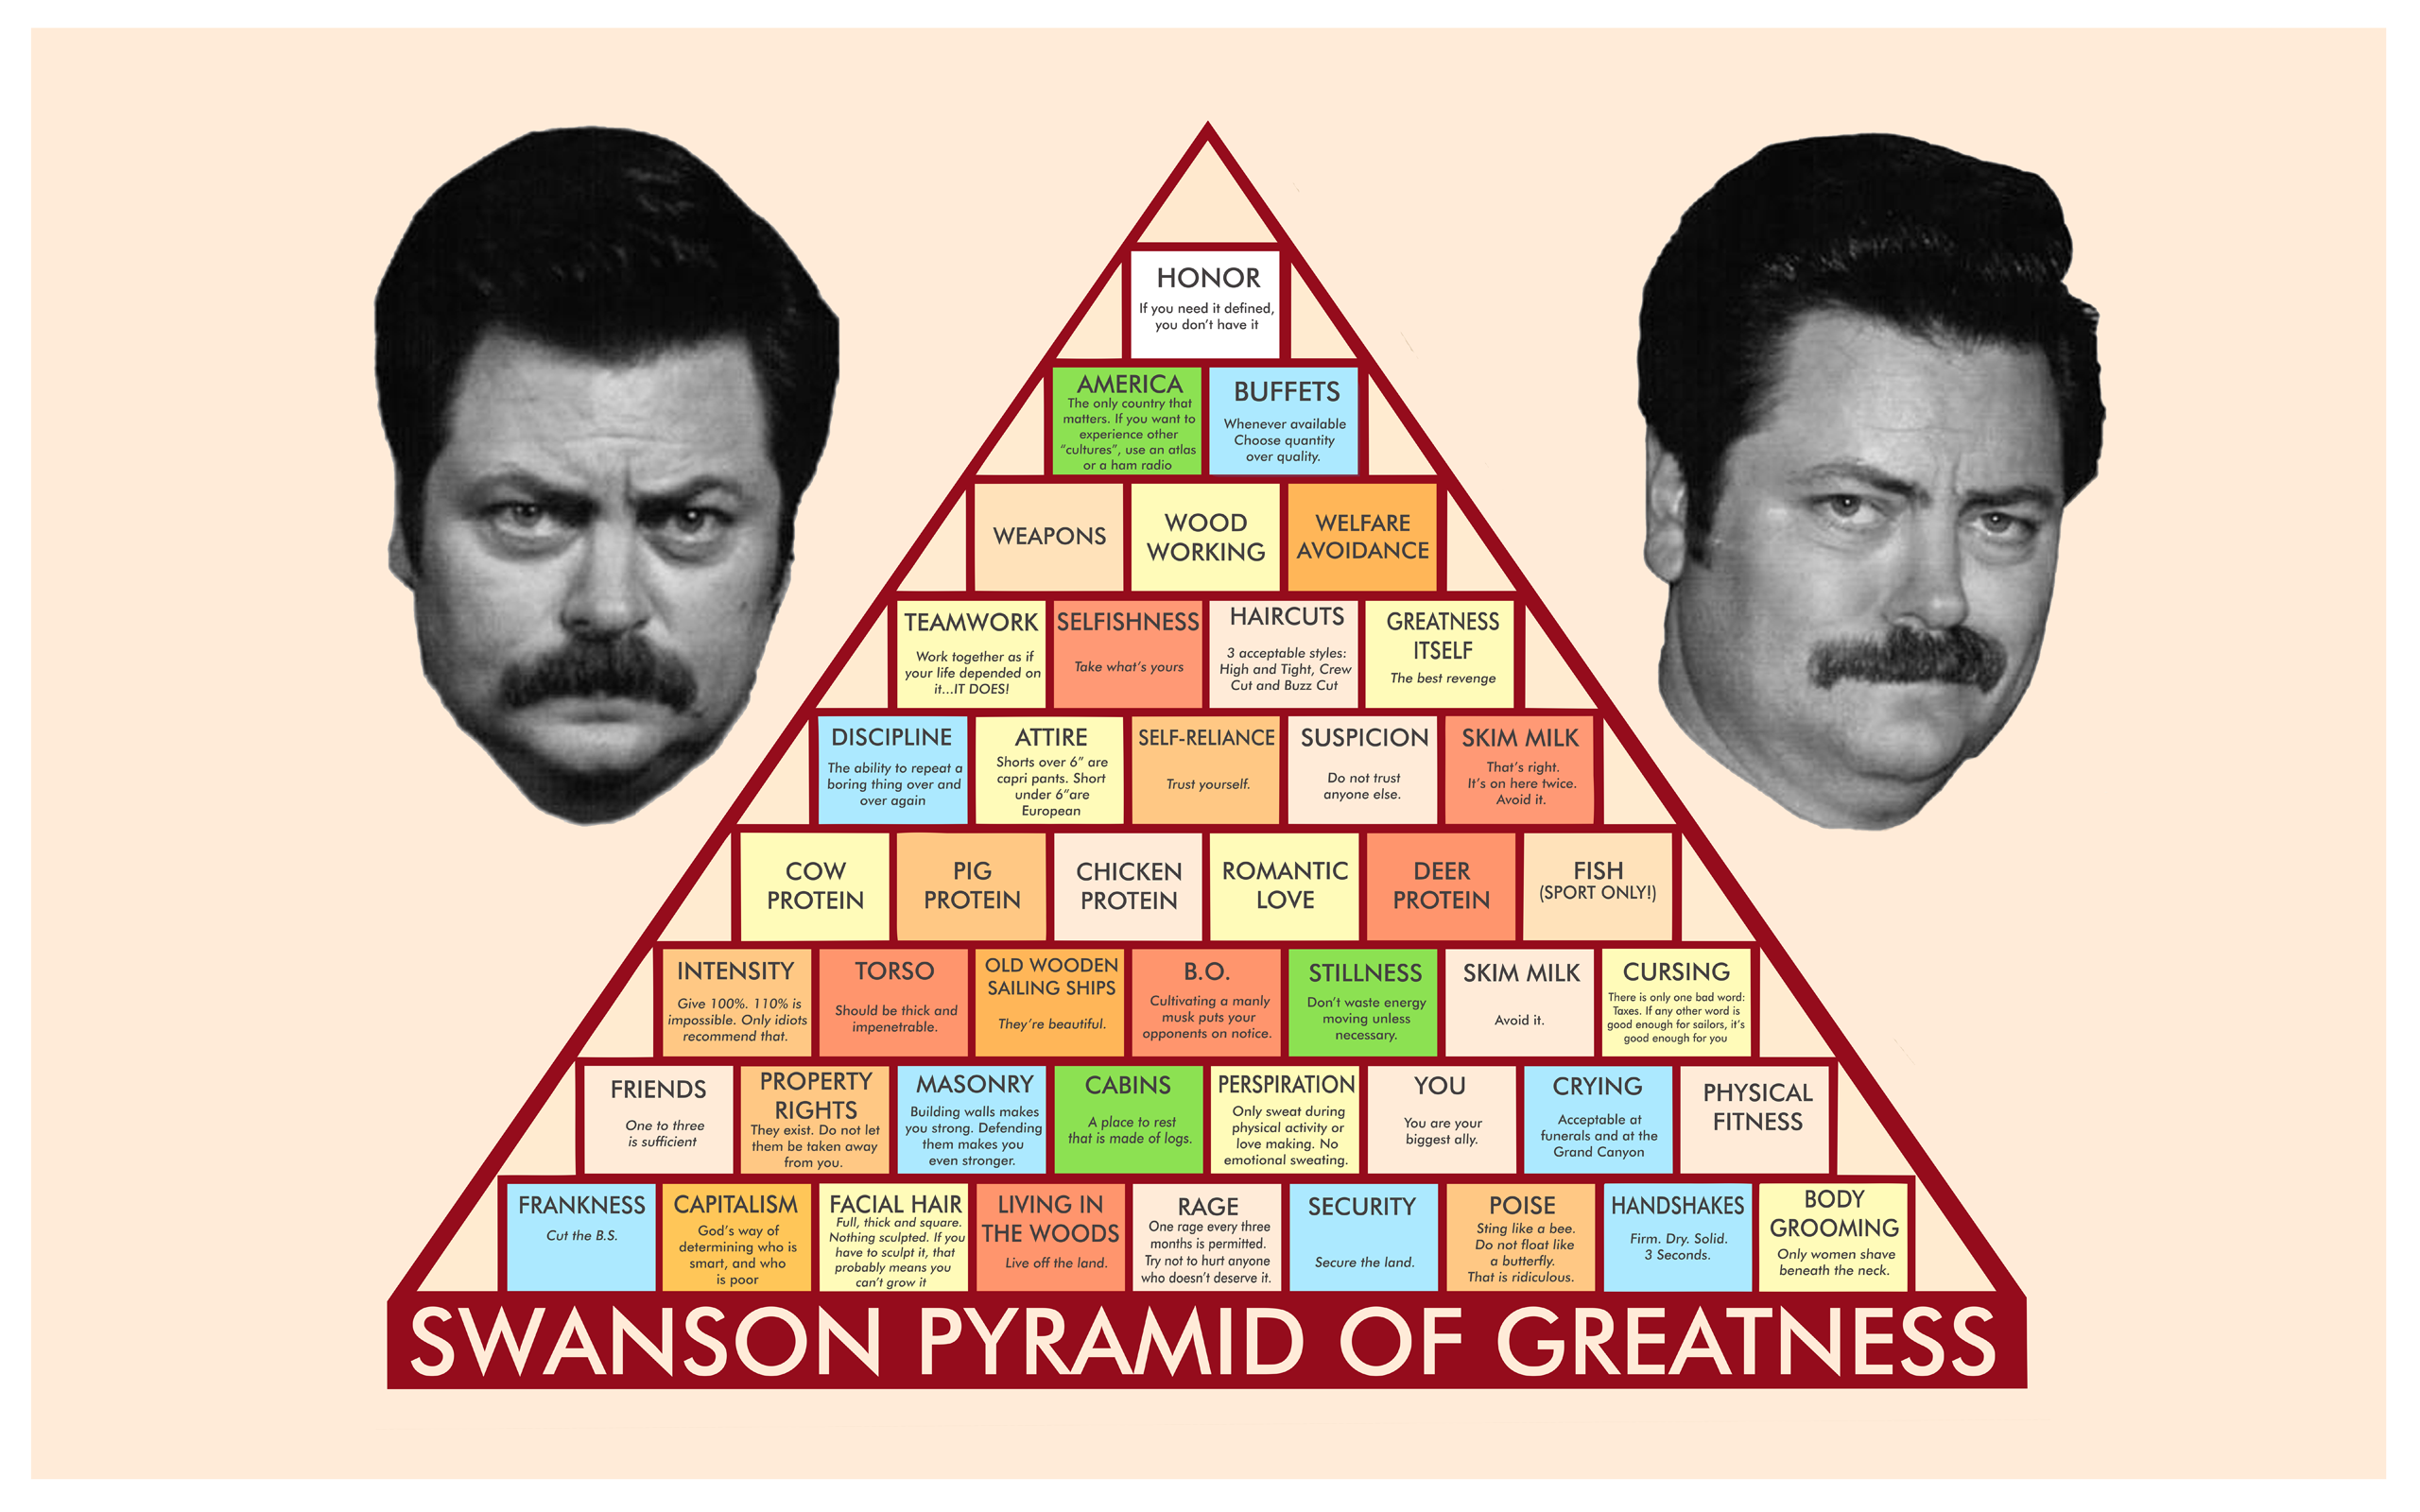 graphic about Ron Swanson Pyramid of Greatness Printable Version known as Ron Swanson Pyramid Of Greatness Wallpapers Daves Geeky Designs